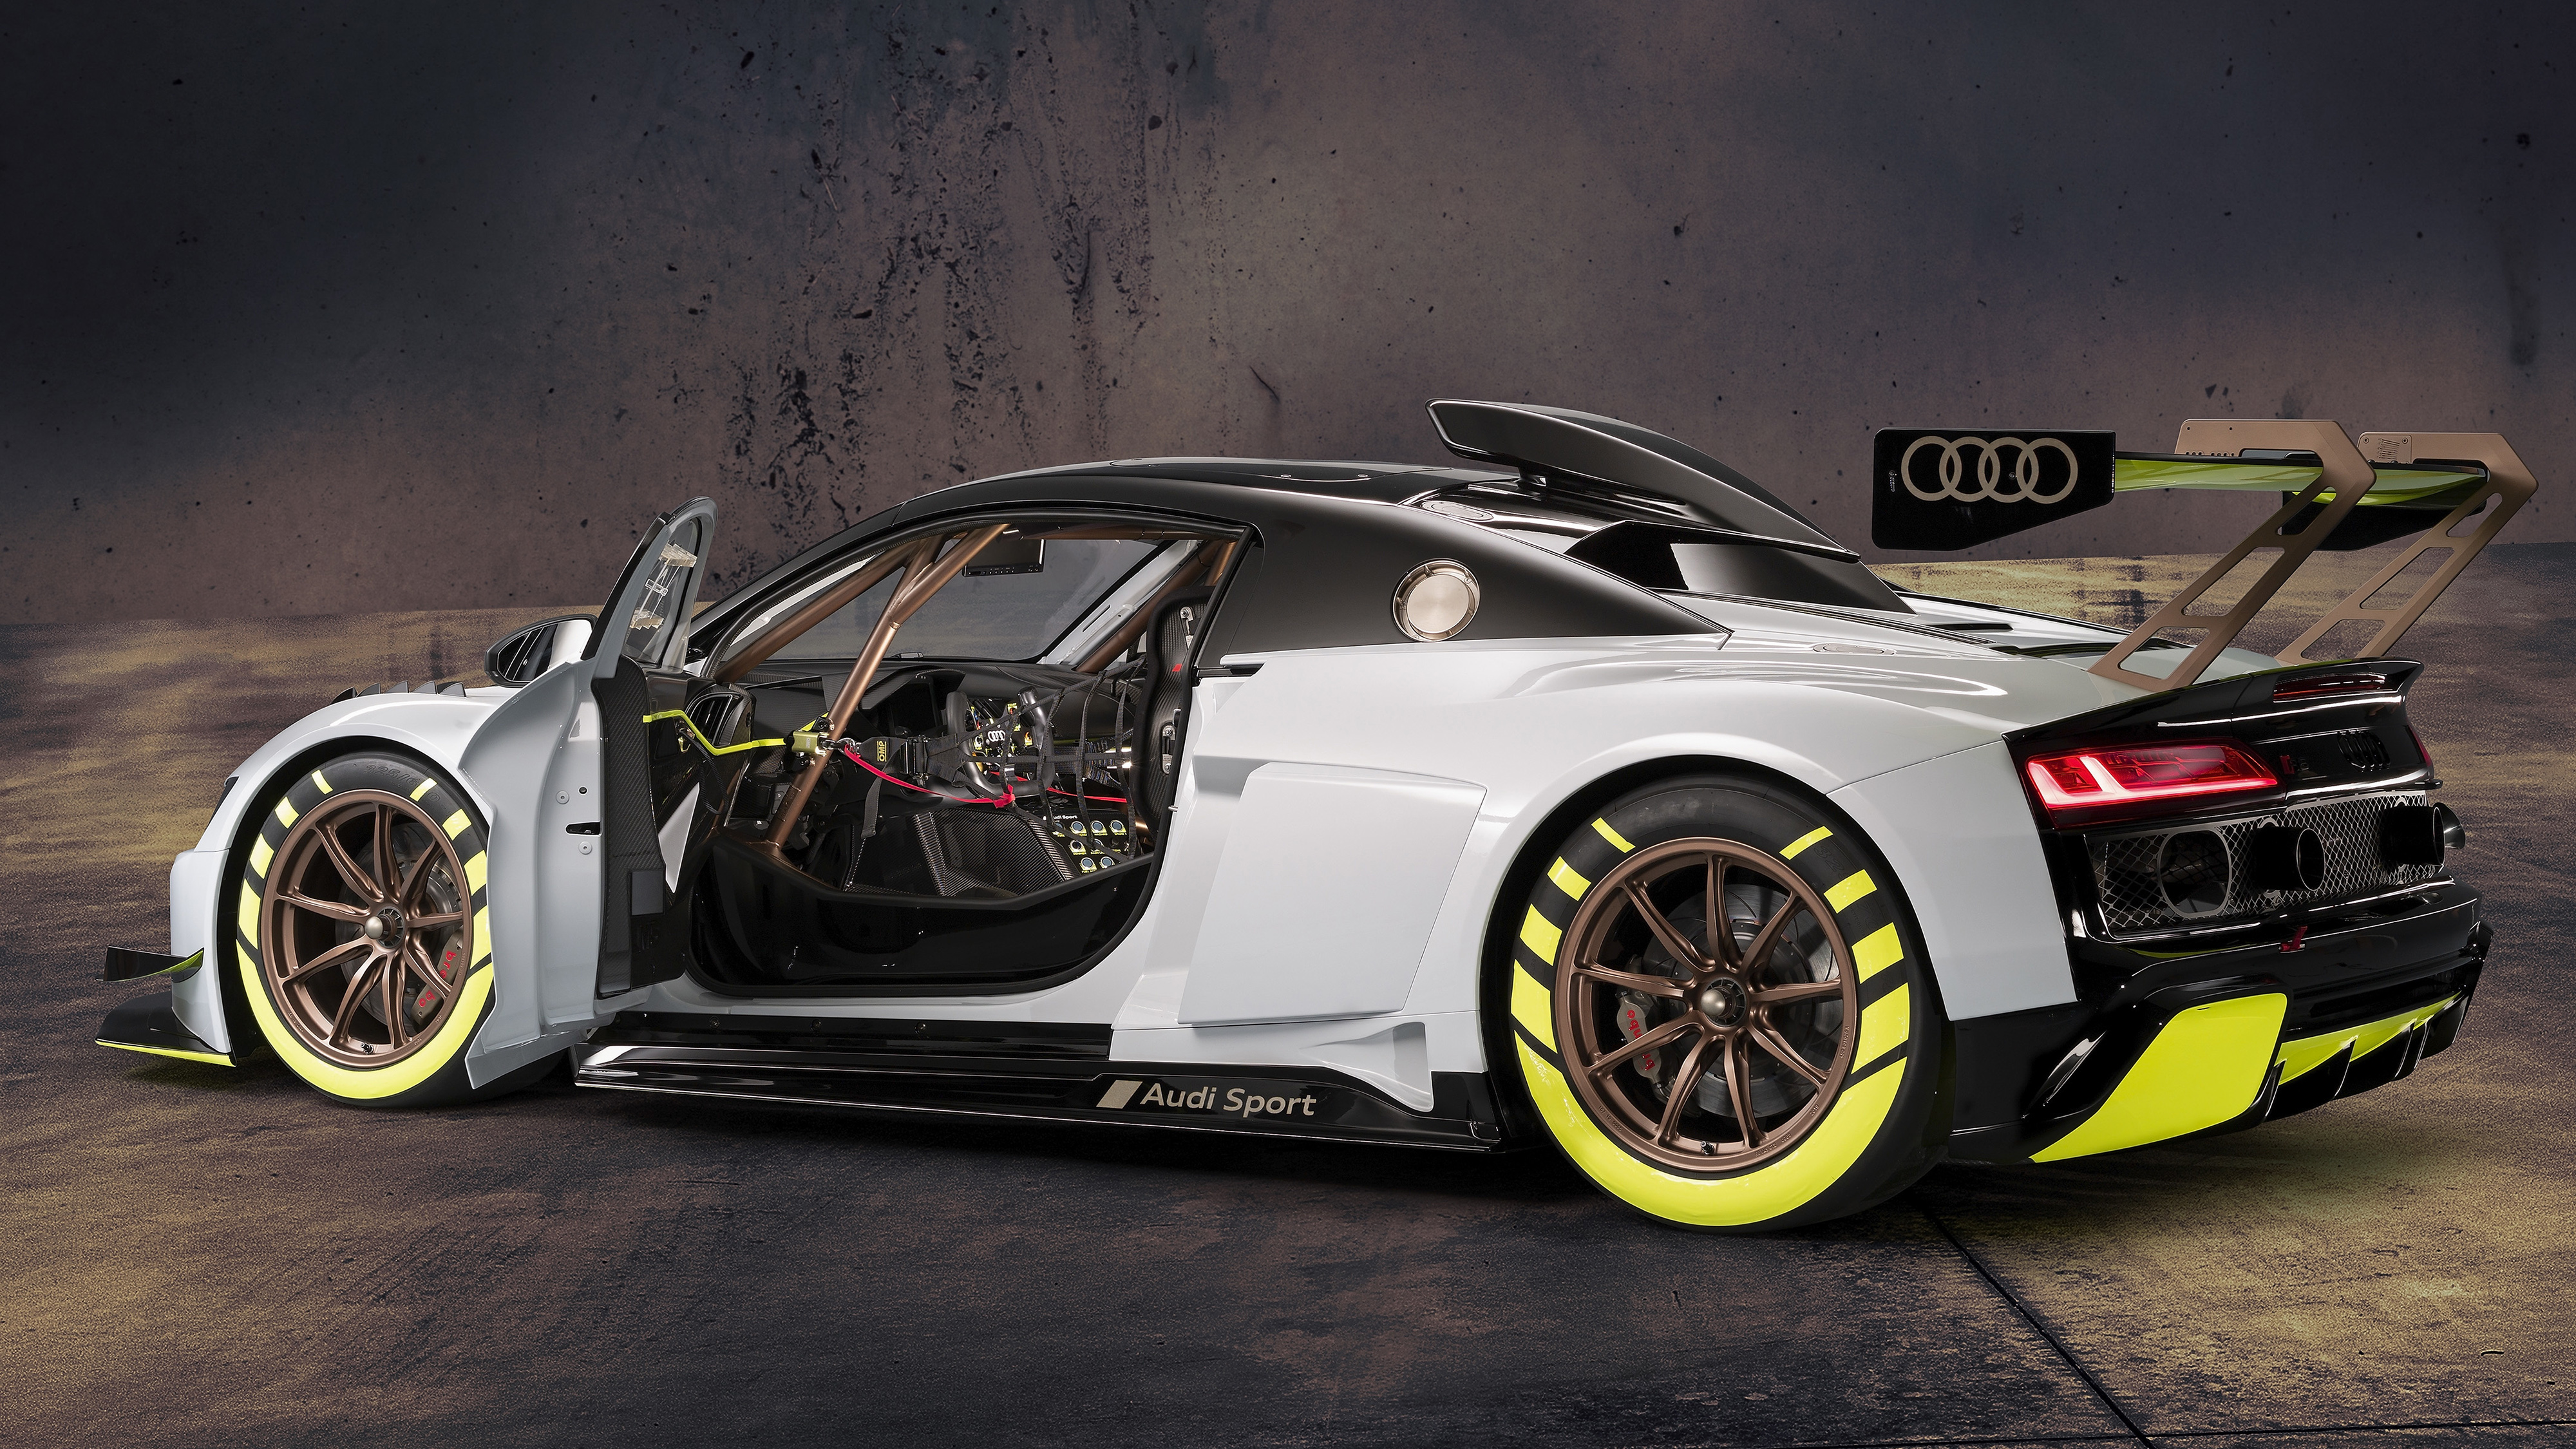 3840x2400 best hd wallpapers of cars, 4k ultra hd 16:10 desktop backgrounds for pc & mac, laptop, tablet, mobile phone. Audi R8 Lms Gt2 4000x2250 Wallpaper Teahub Io